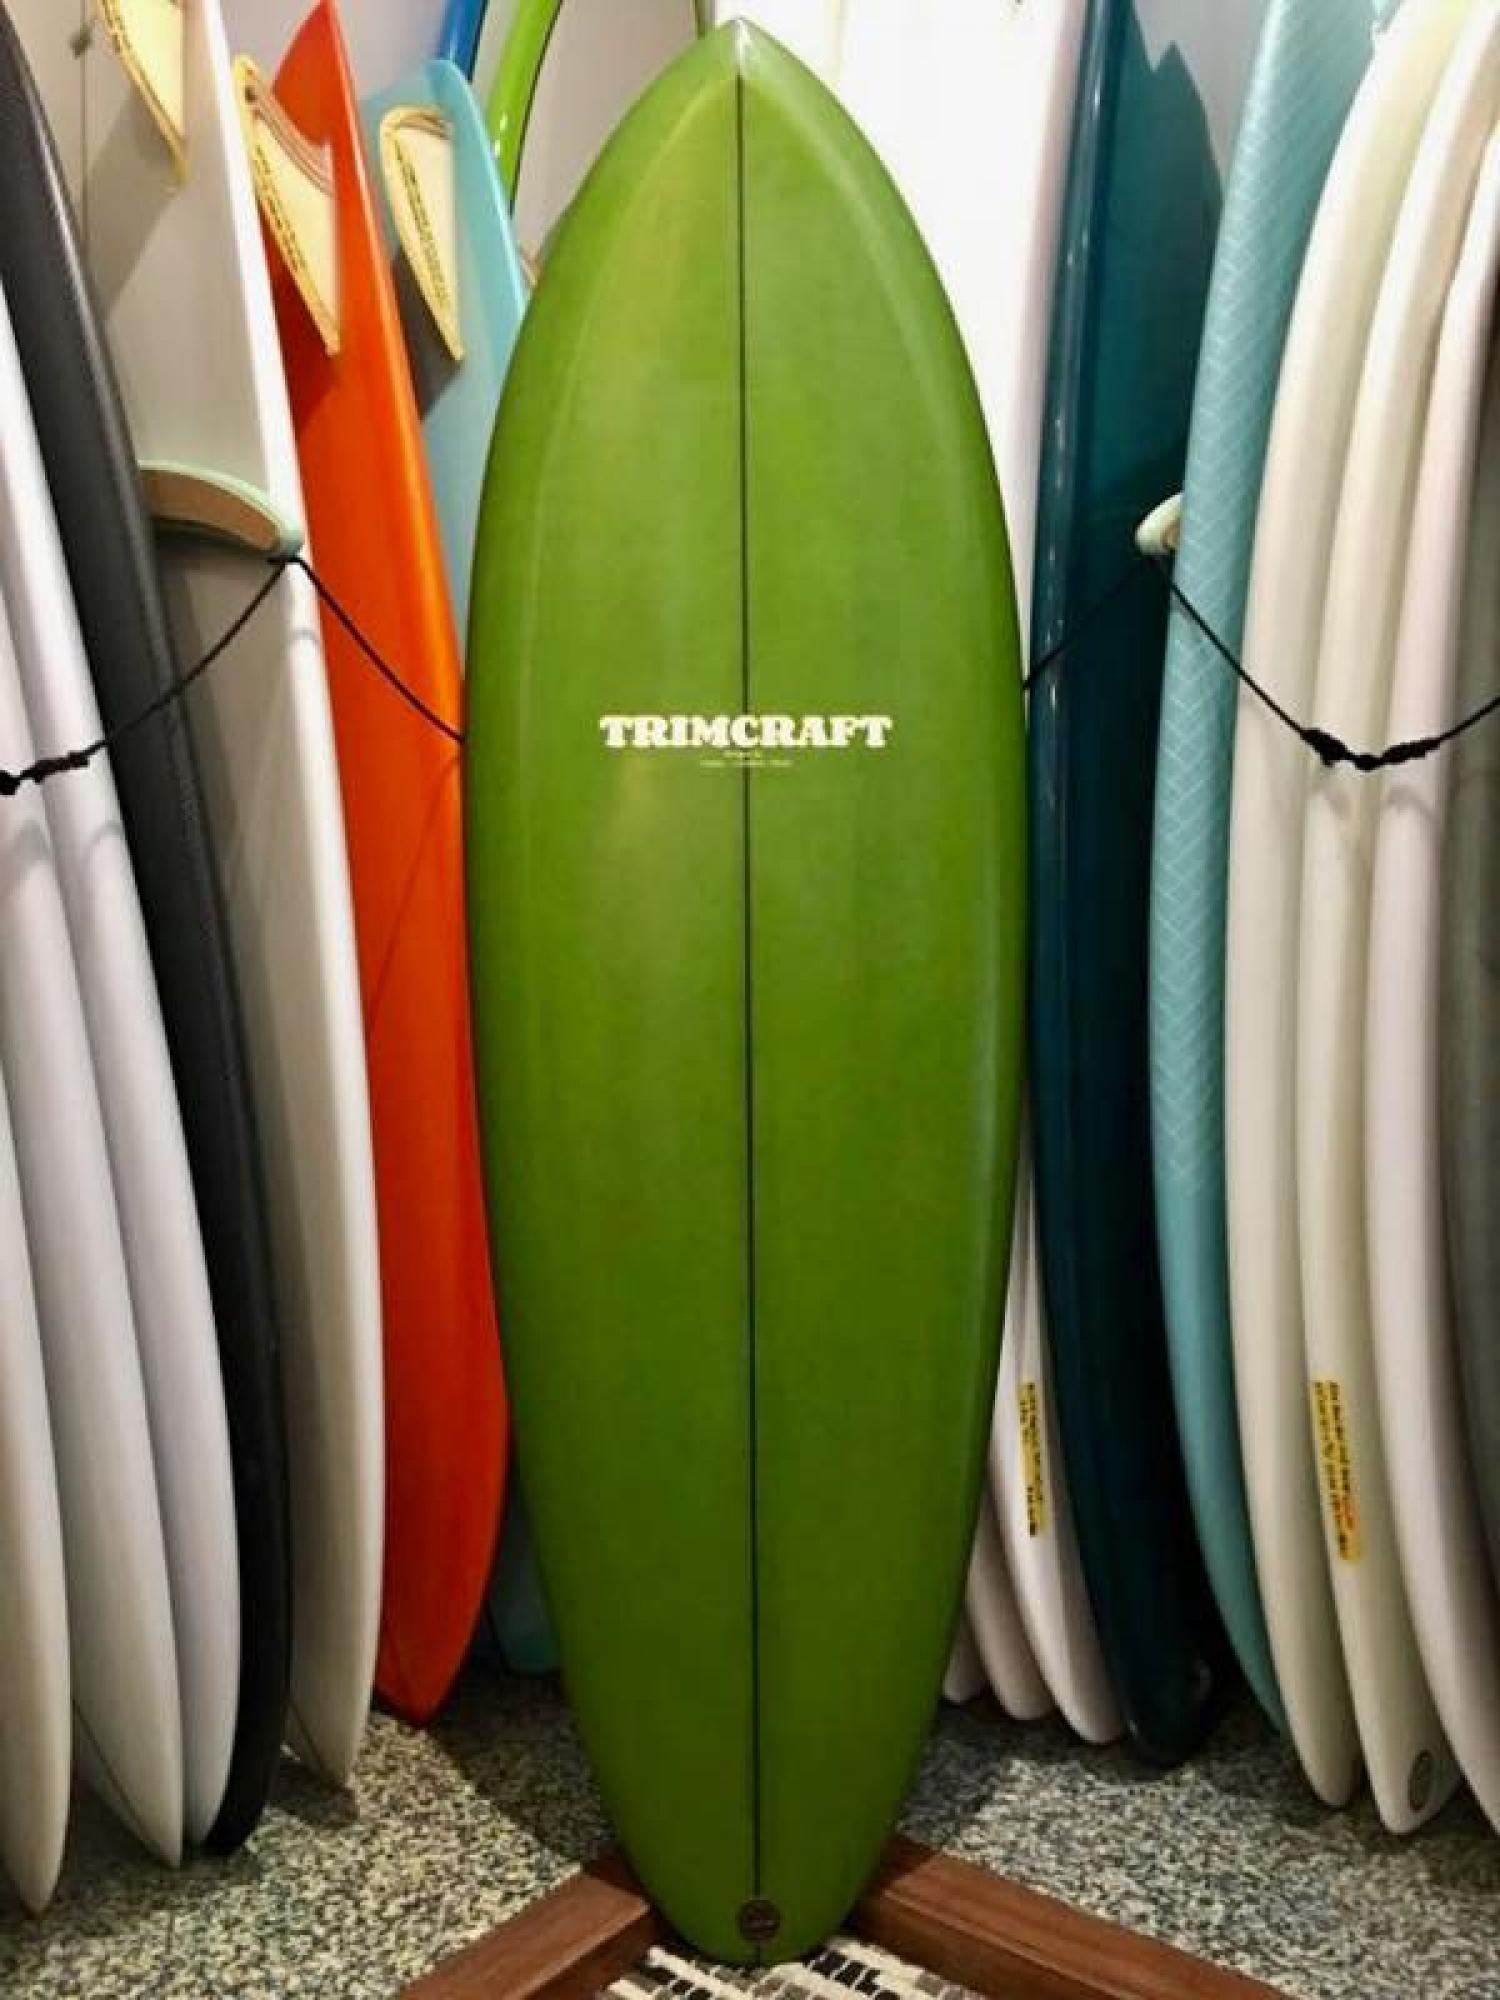 TrimCraft Surfboards t.Rev 5.6